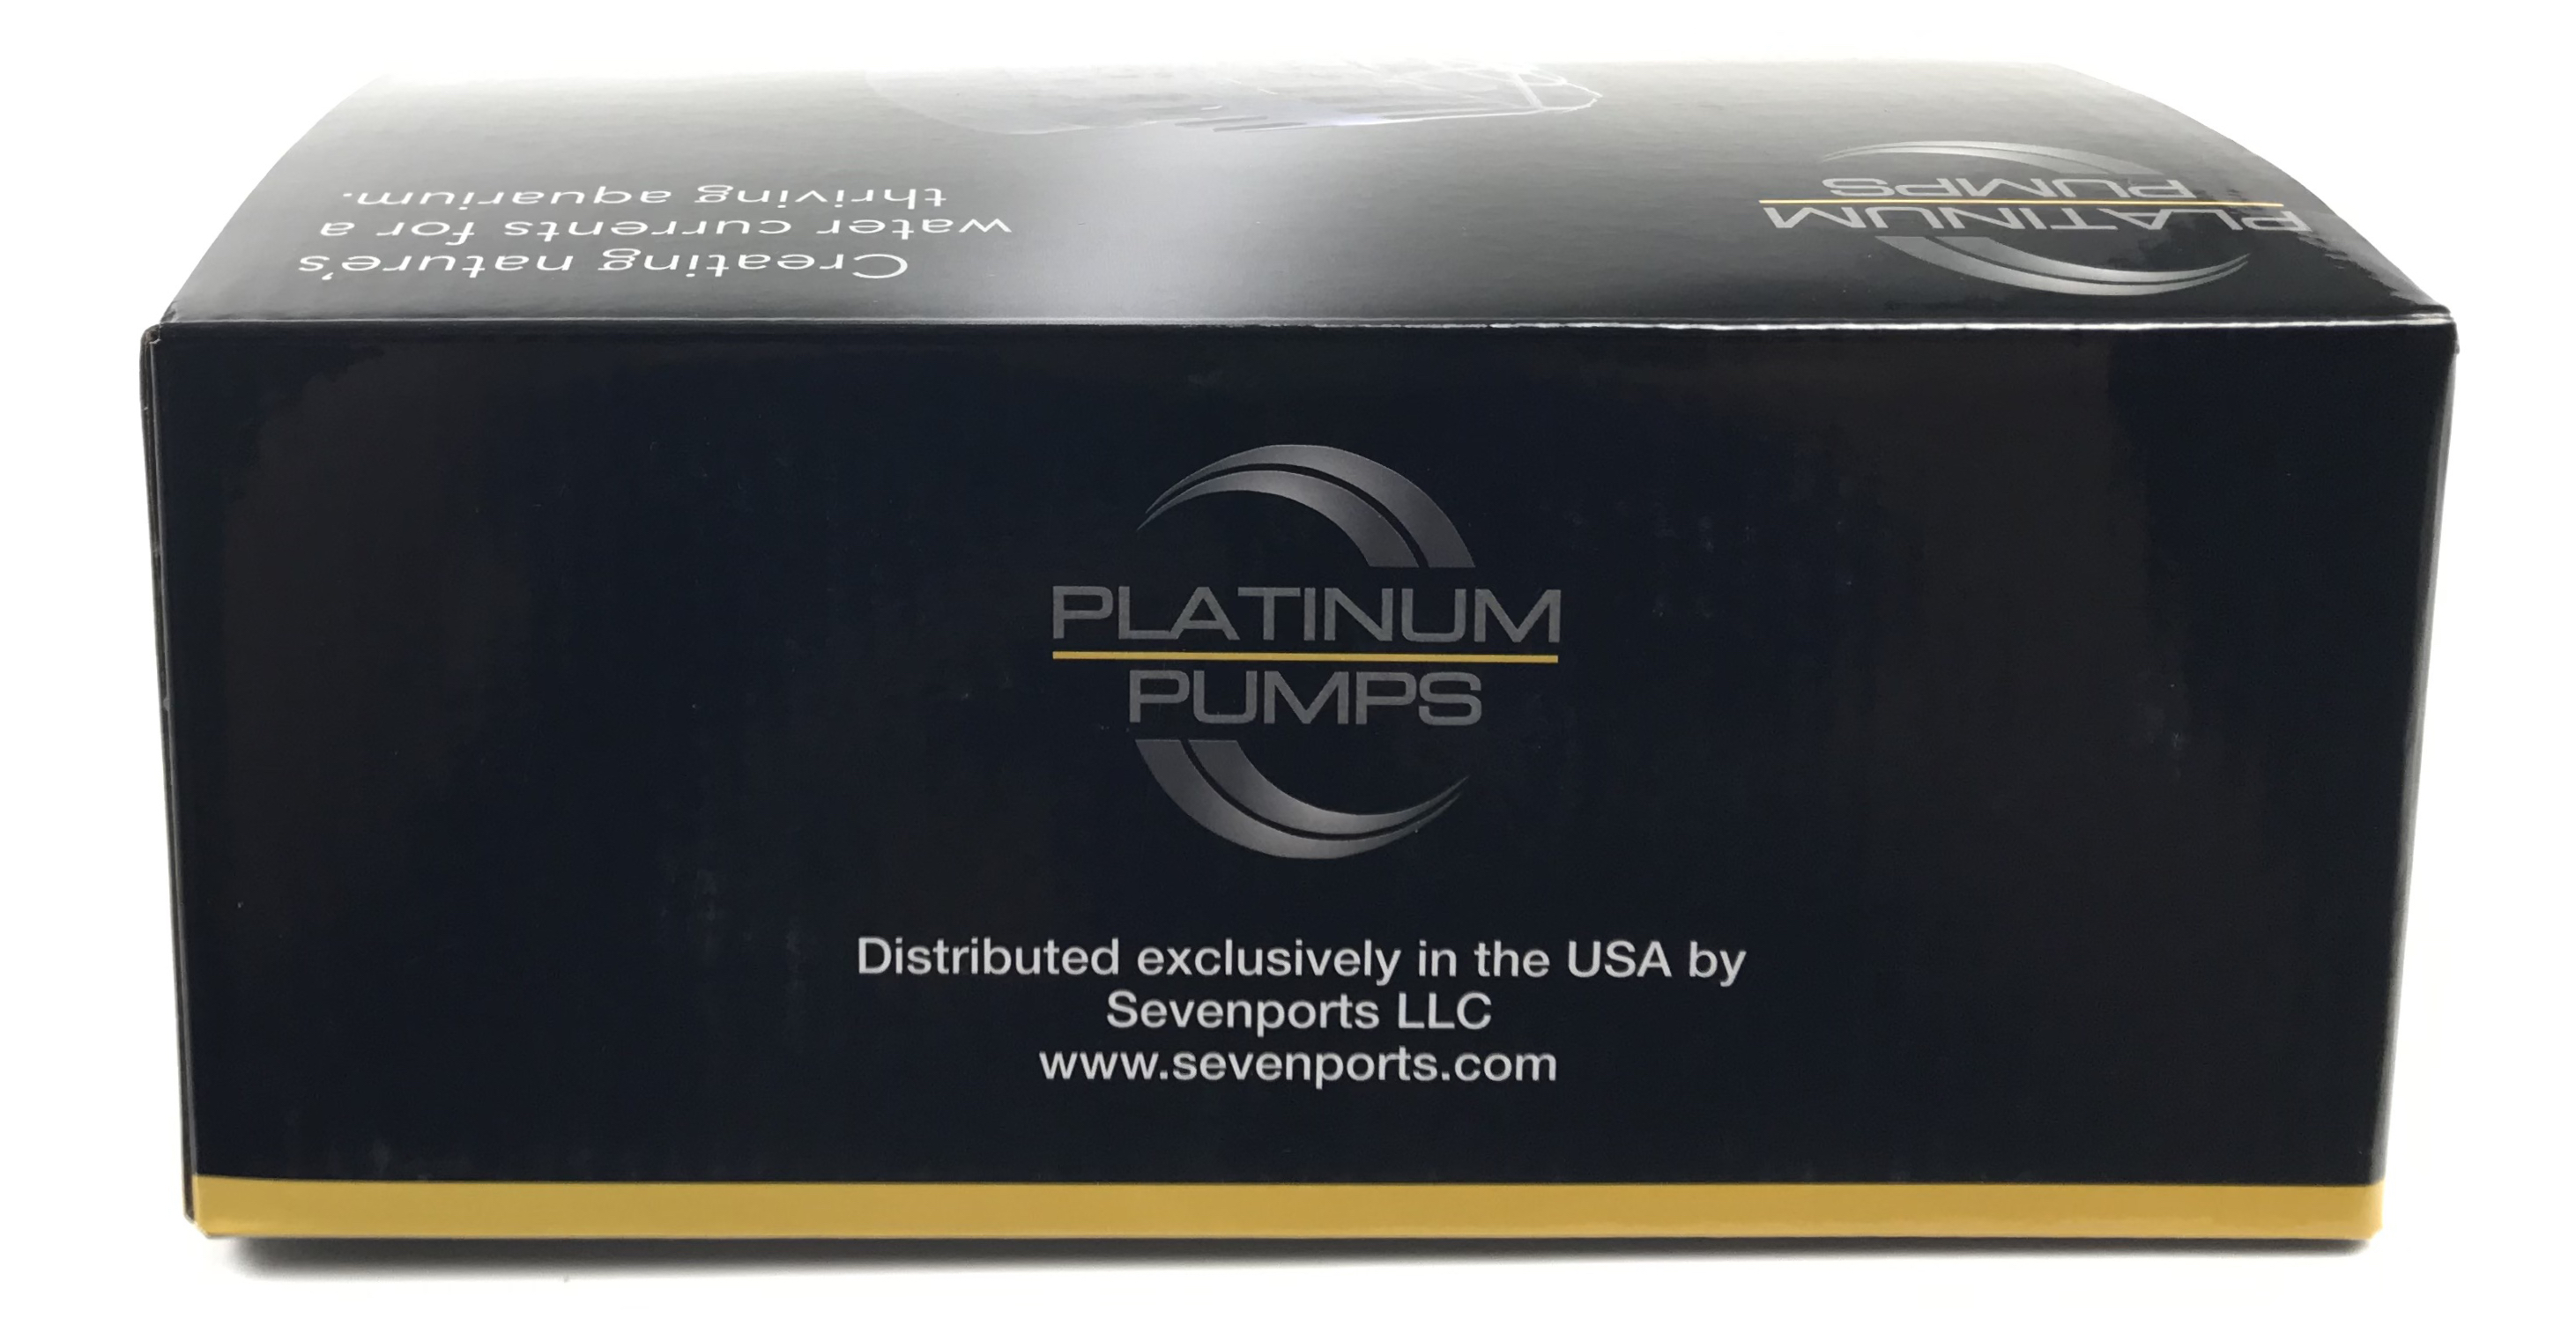 Platinum DC Slim Wave 2600 Pump - 2642 gph